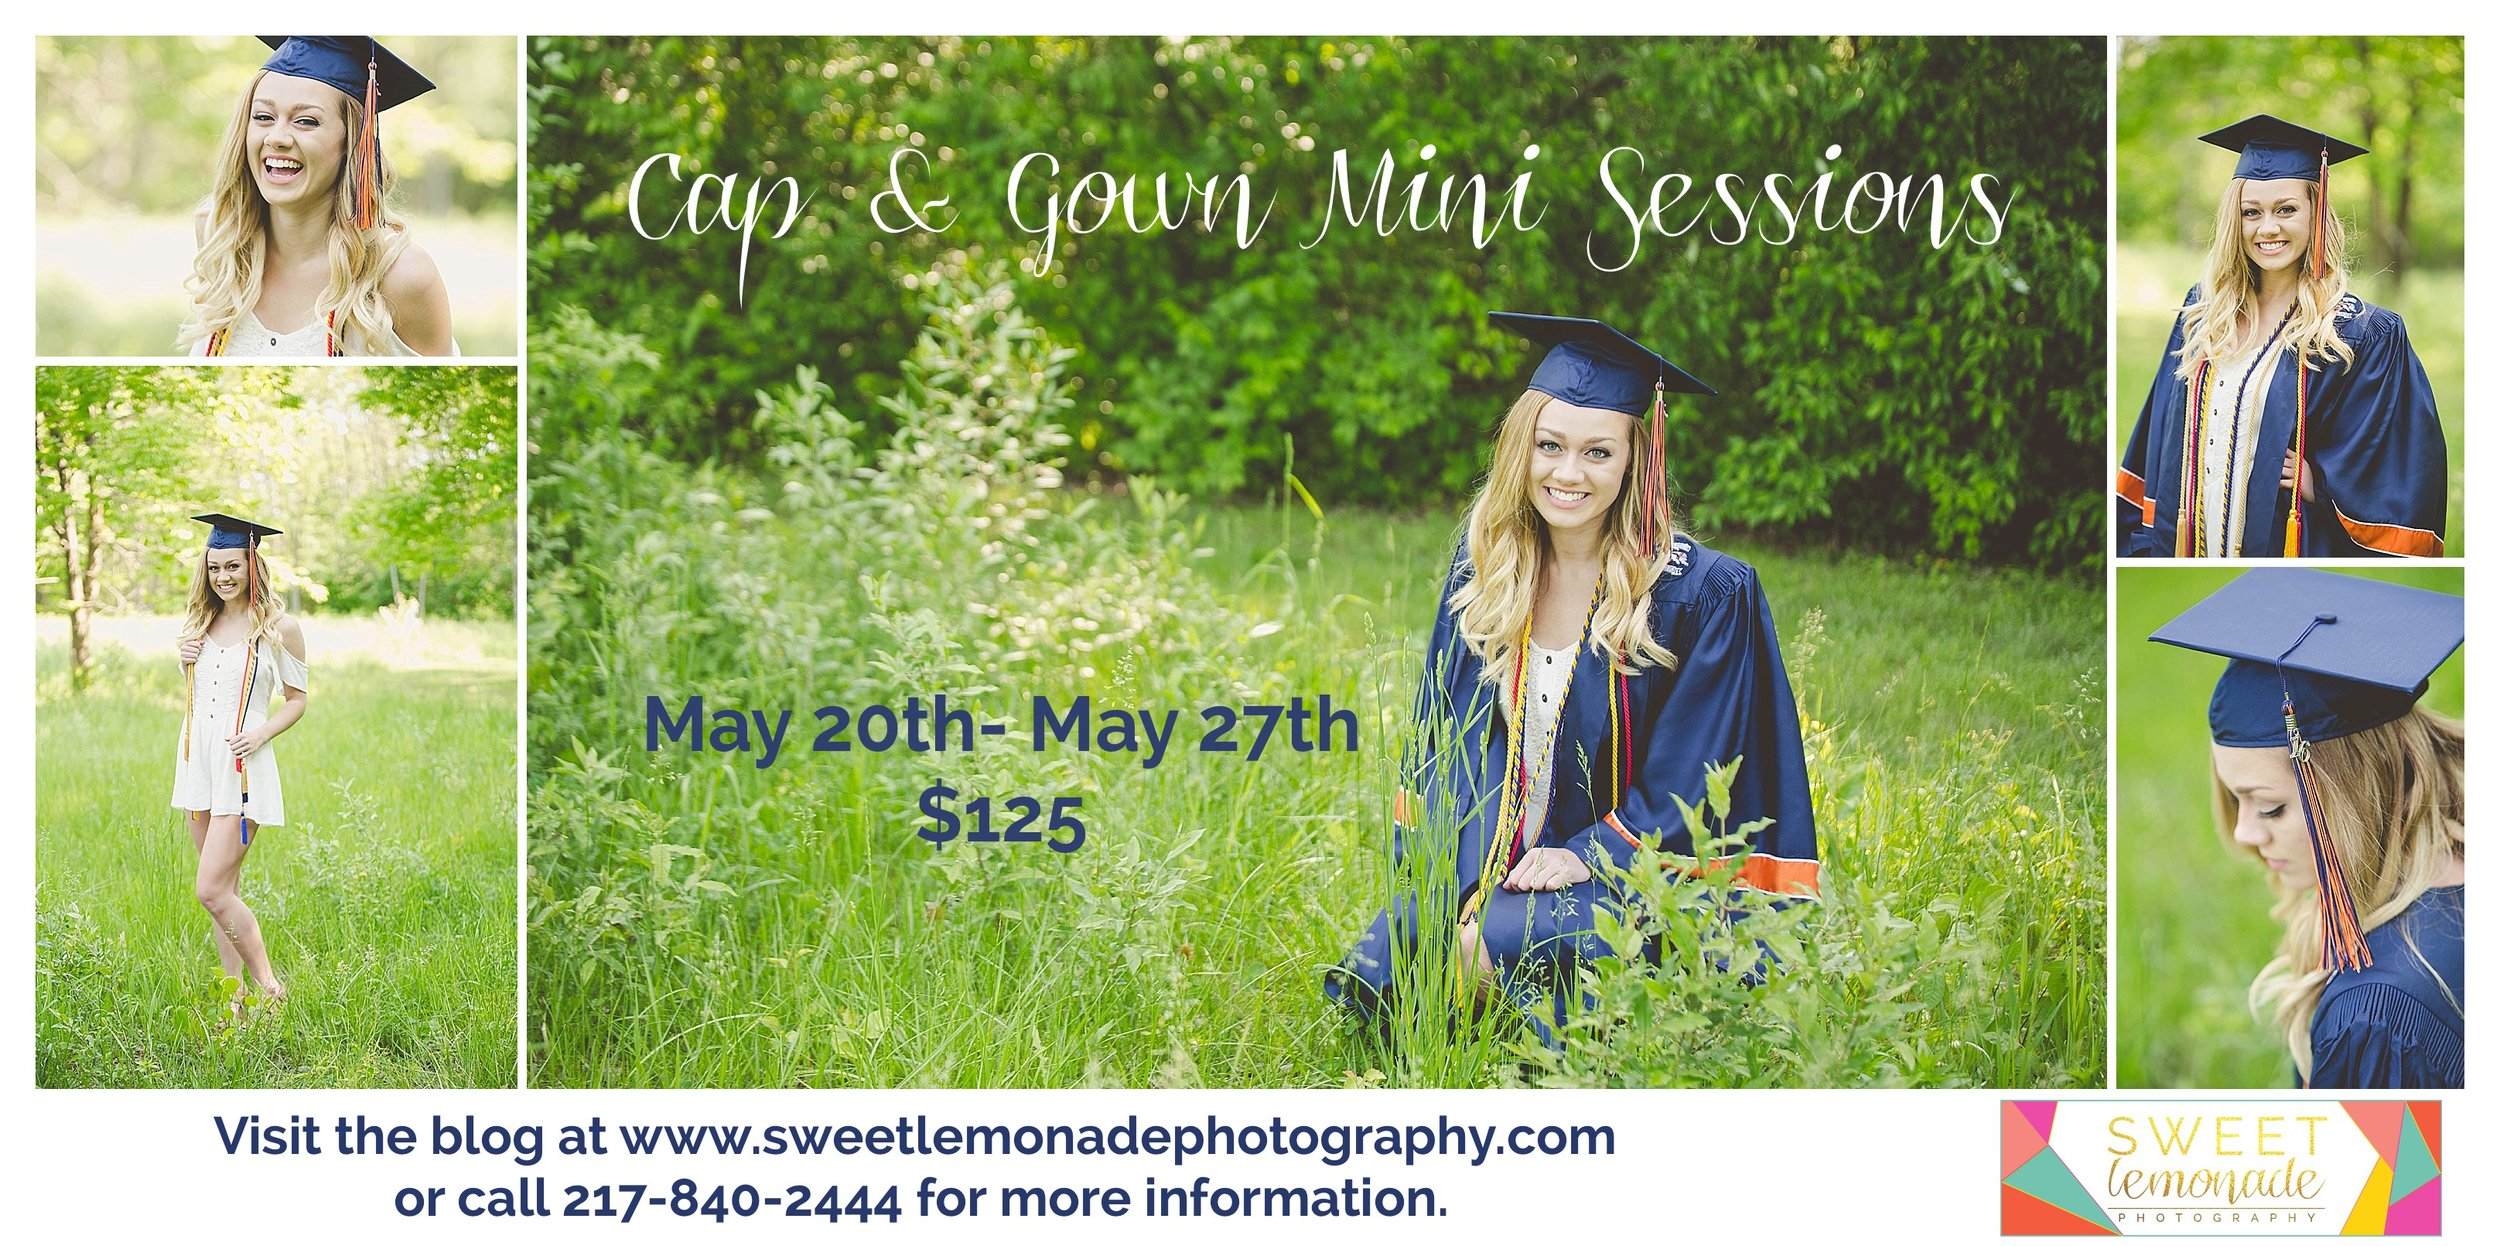 Sweet Lemonade Photography Cap and Gown Graduation Mahomet, IL  Champaign, IL Photographer